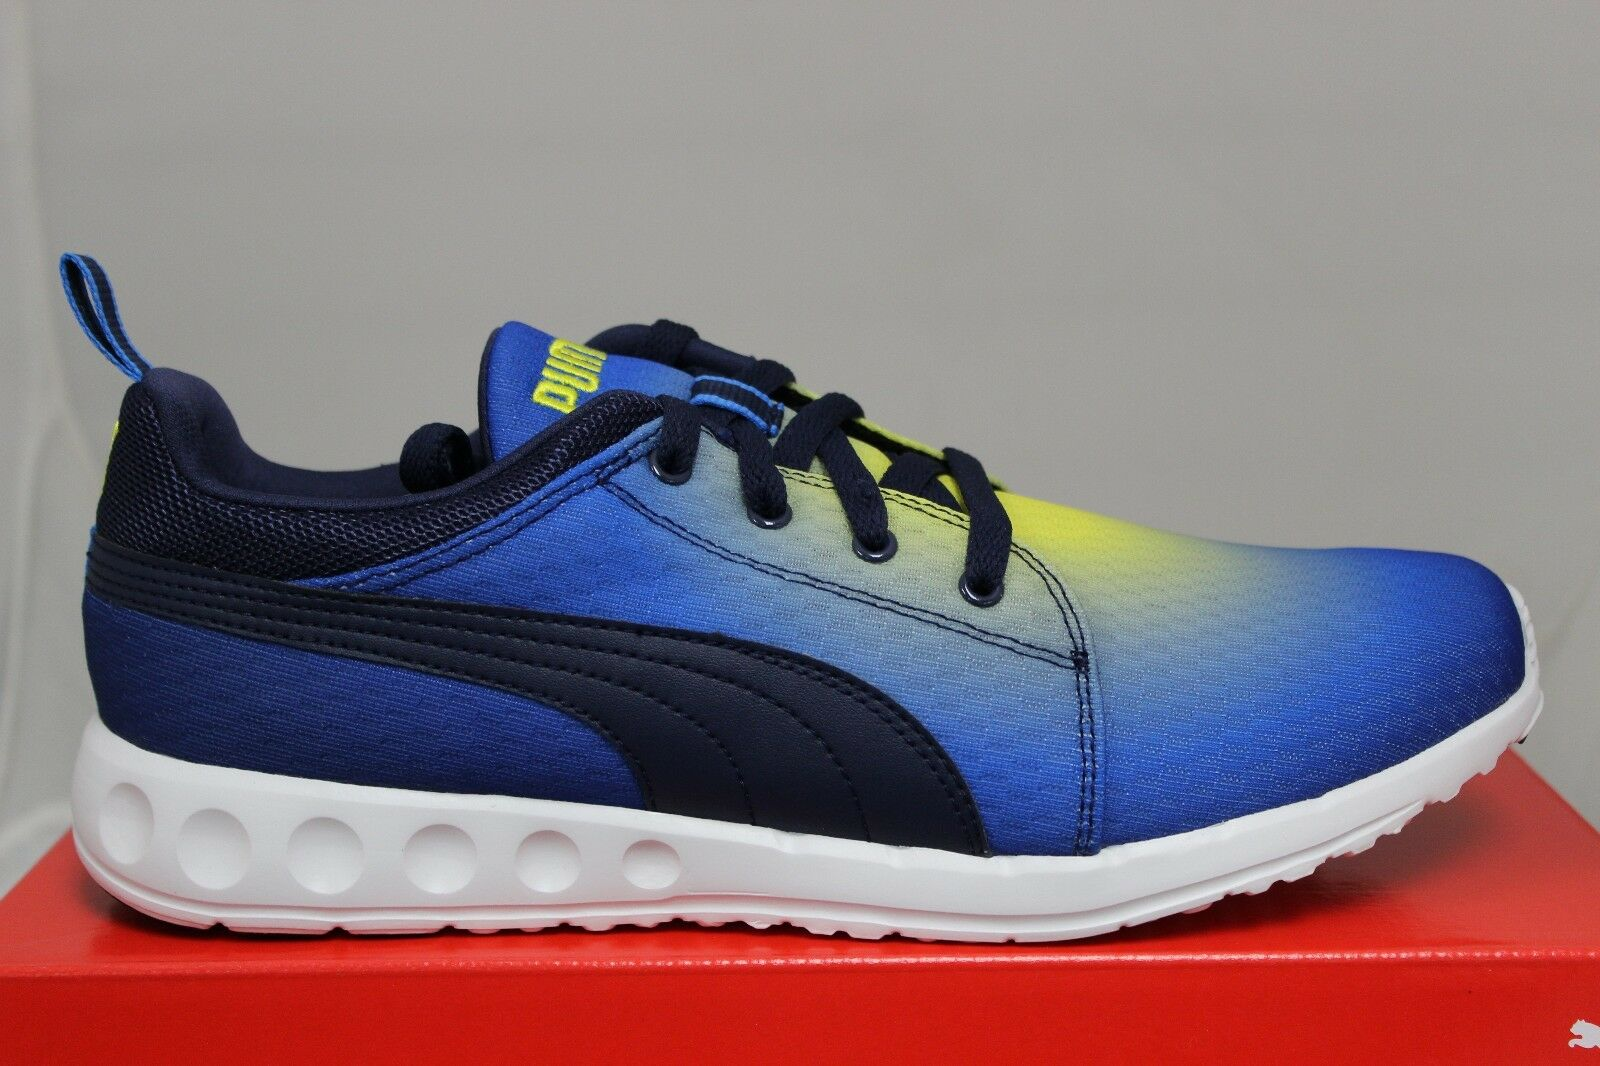 PUMA Carson Runner Radial 188761 03 French bluee Black Buttercup Brand New